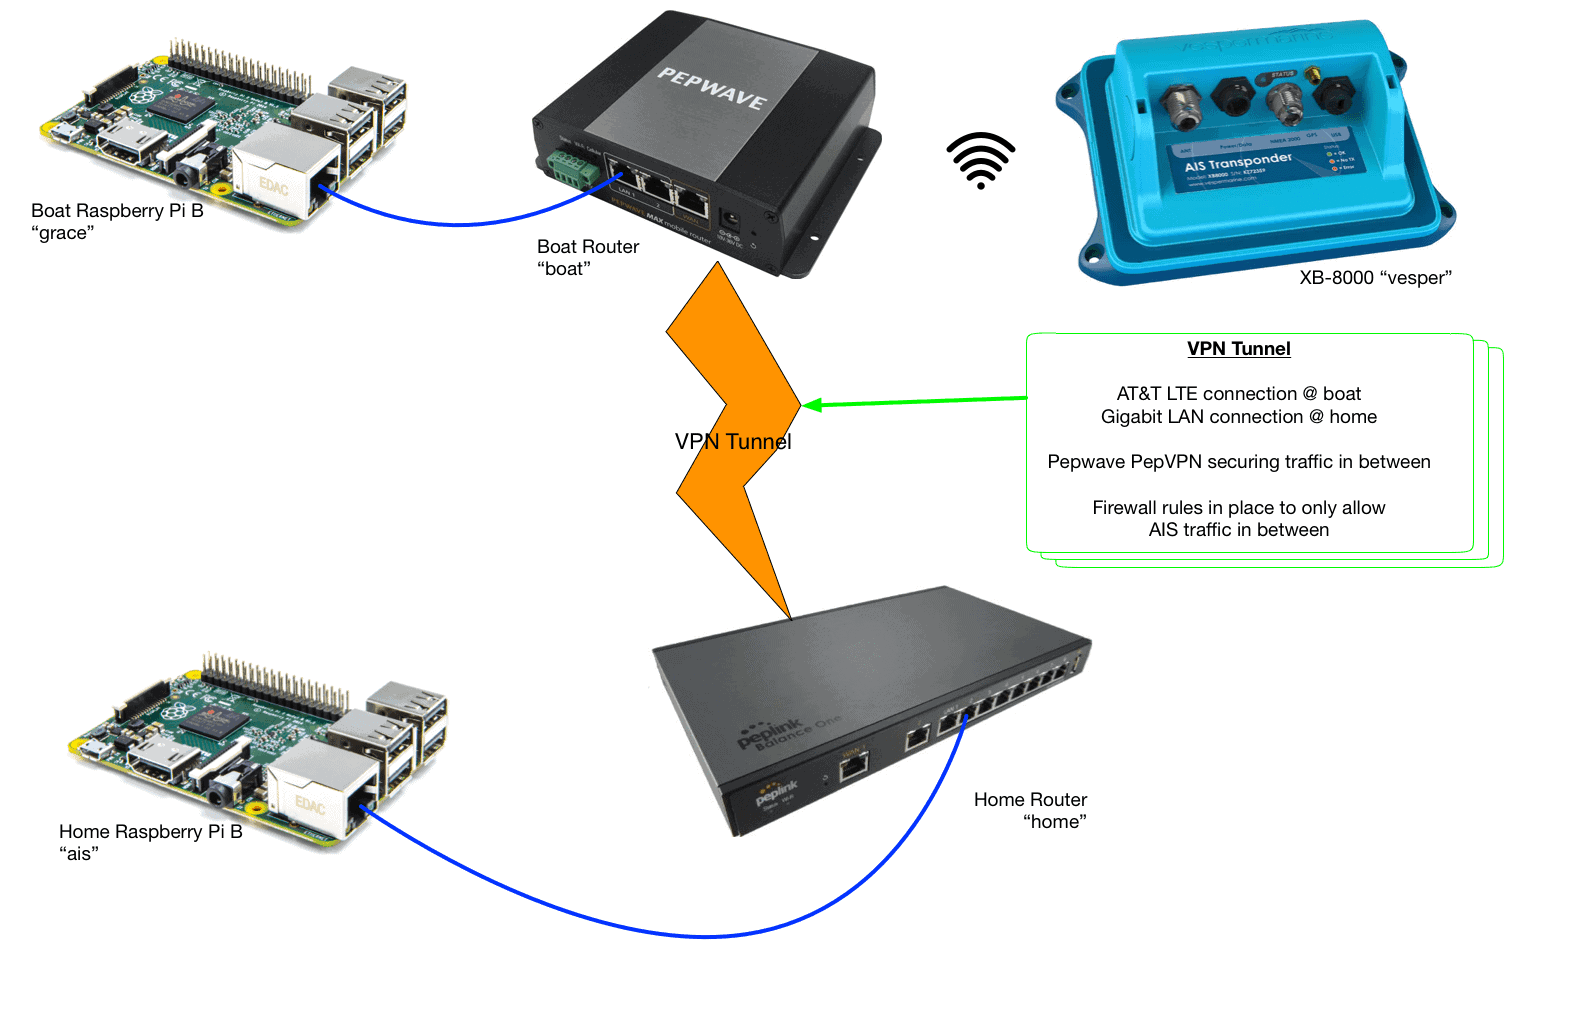 AIS network diagram from Grace